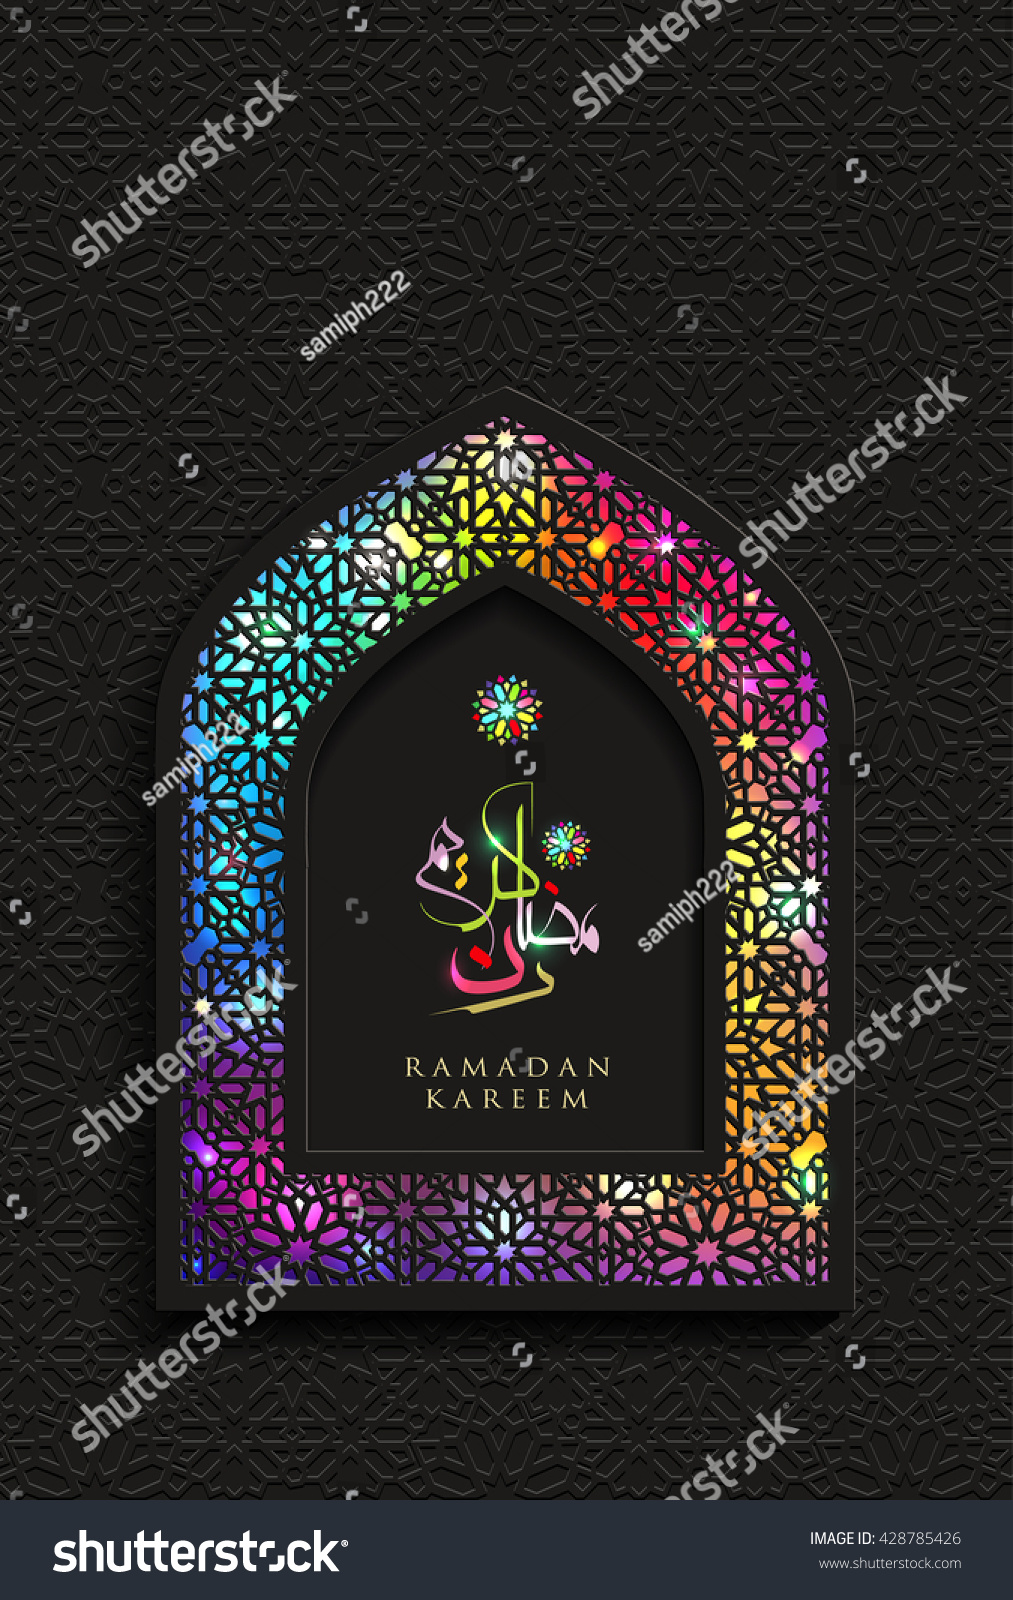 All About Ramadan Kareem Mubarak Meaning Definition Amp Discussion